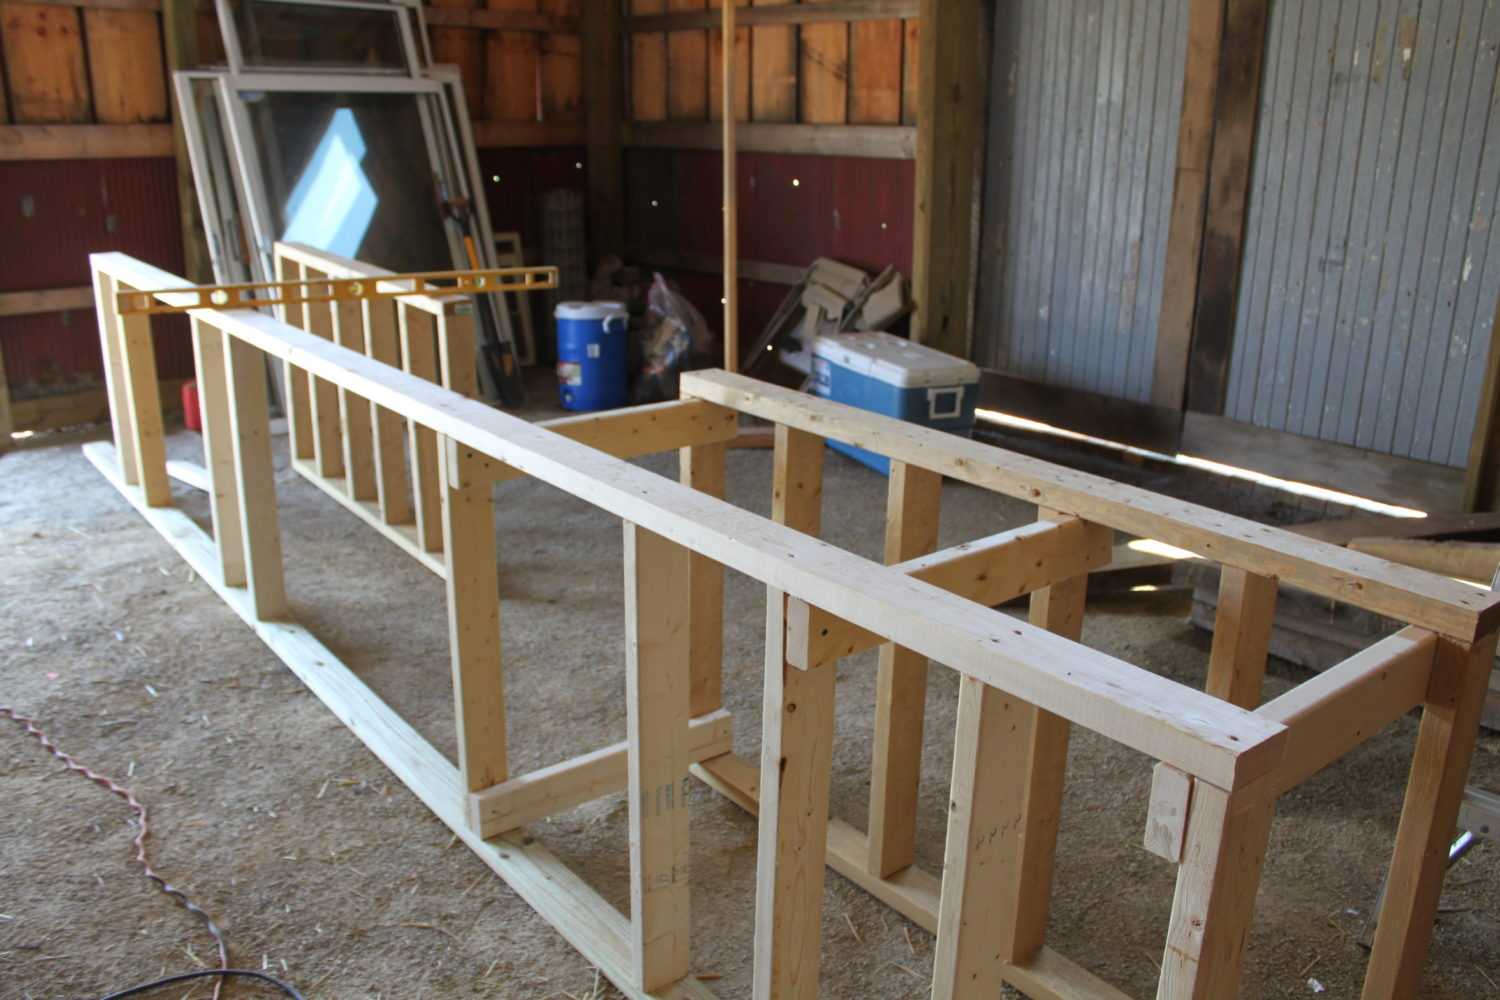 We started by making the frame from 2 x 4's – using treated lumber ...